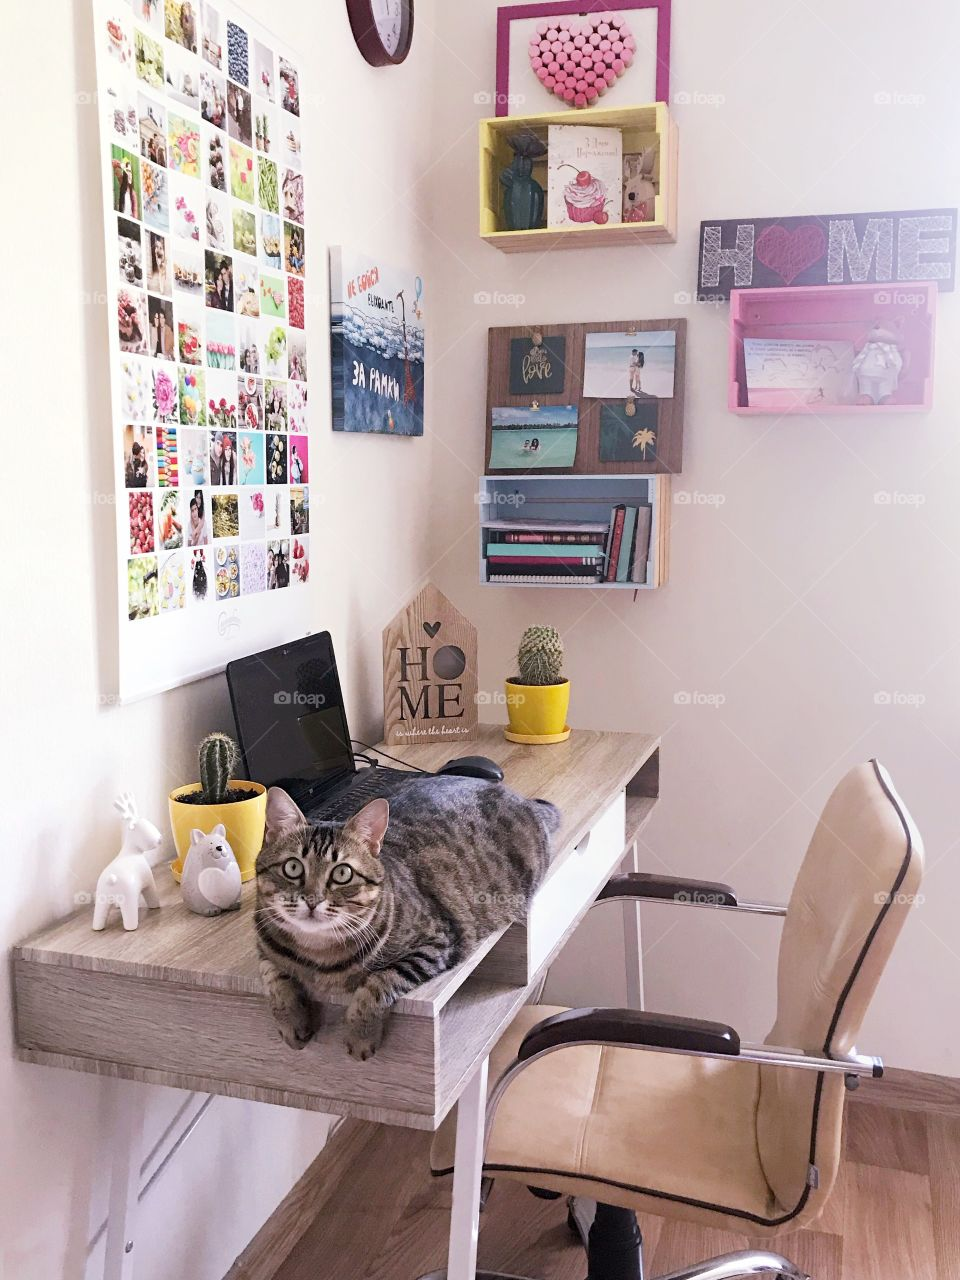 Lovely spot at home. Cozy home. Cat